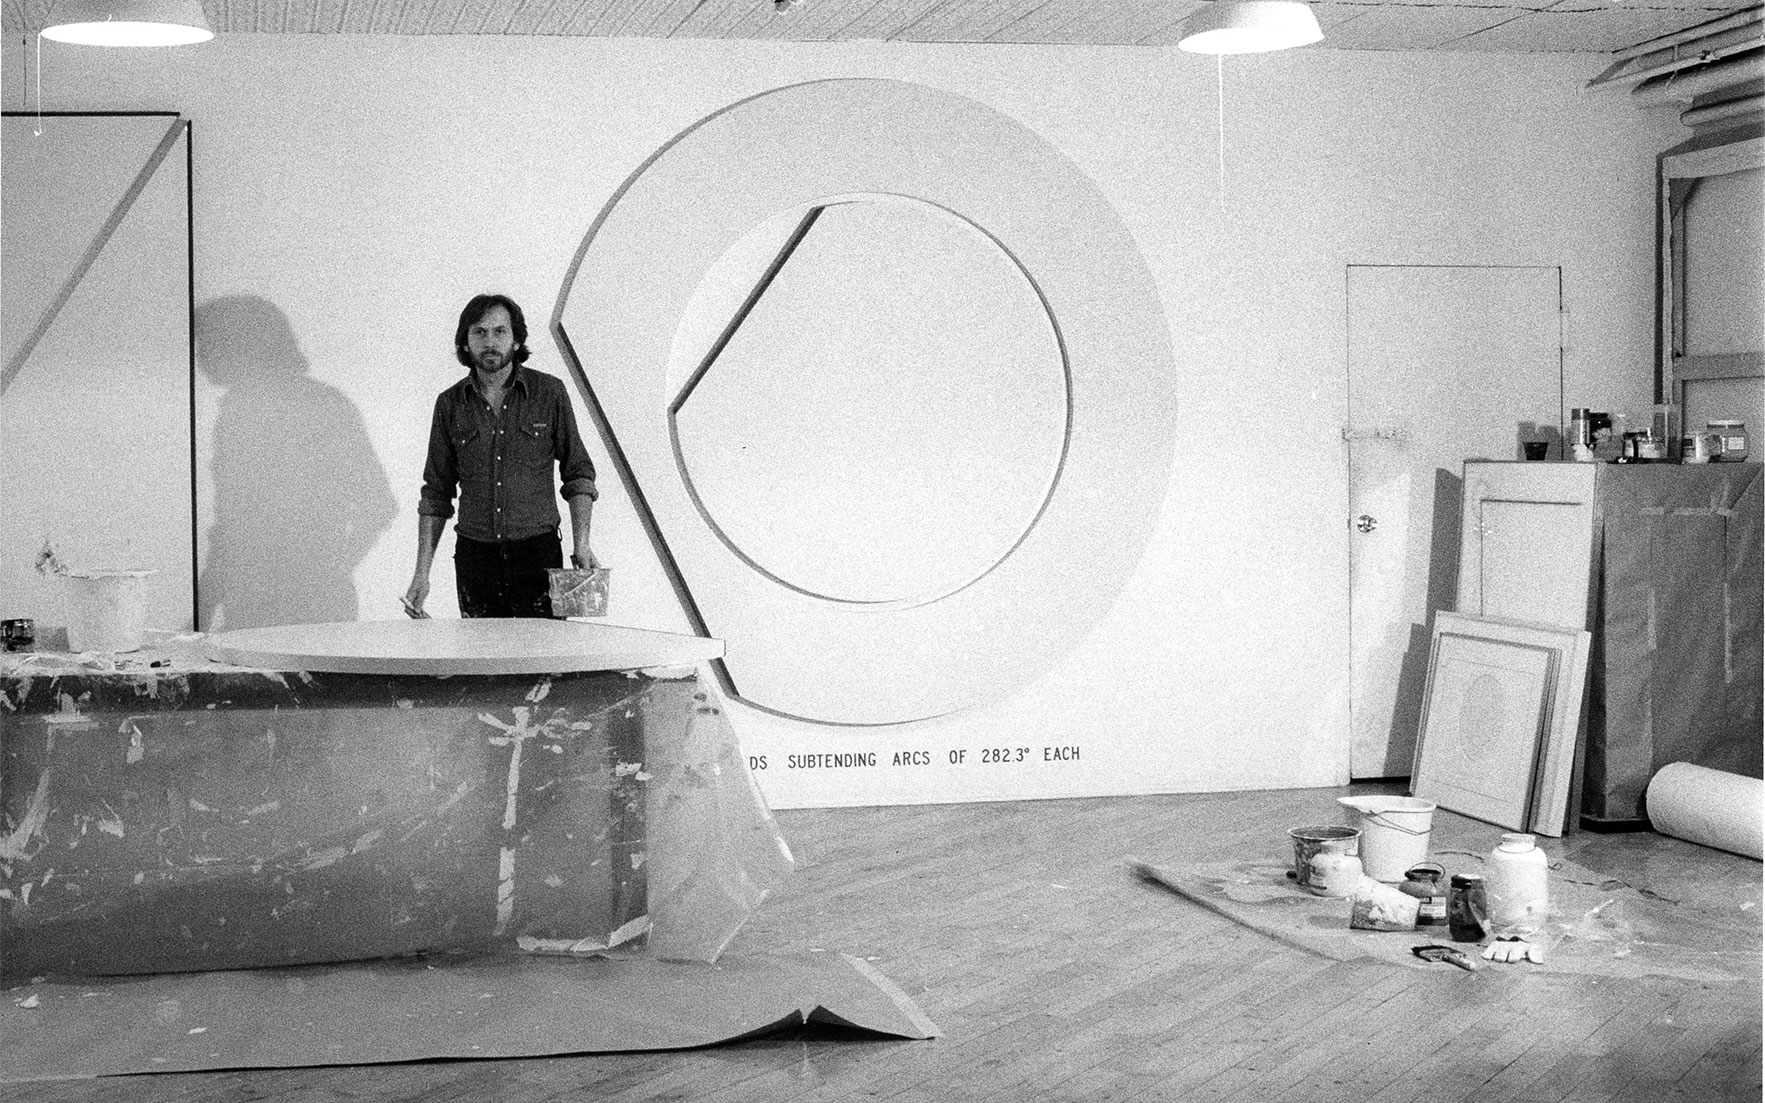 Bernar Venet in his studio in New York in 1978. Courtesy Archives Bernar Venet, New York       .full-screen .image-preview { background-position 50% 35%!important; }